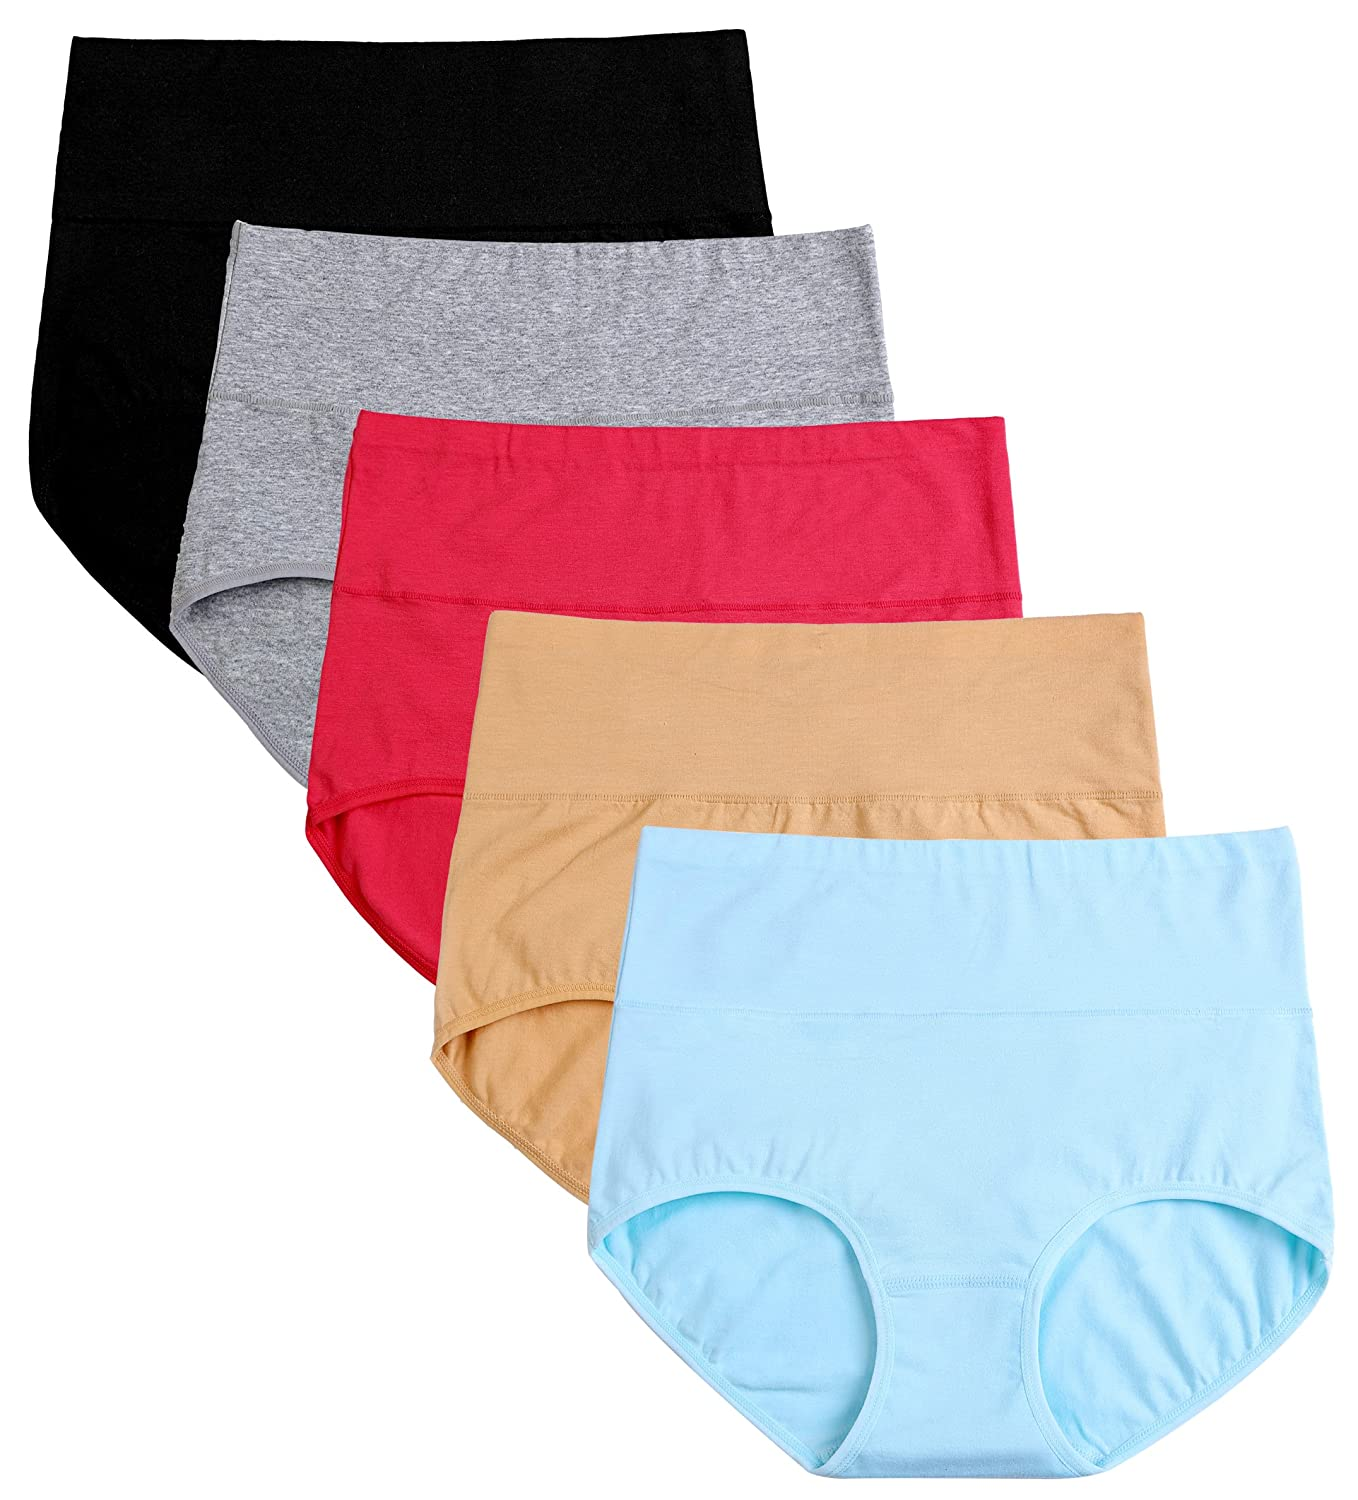 cauniss Womens High Waist Cotton Panties C Section Recovery Postpartum Soft Stretchy Full Coverage Underwear(5 Pack)